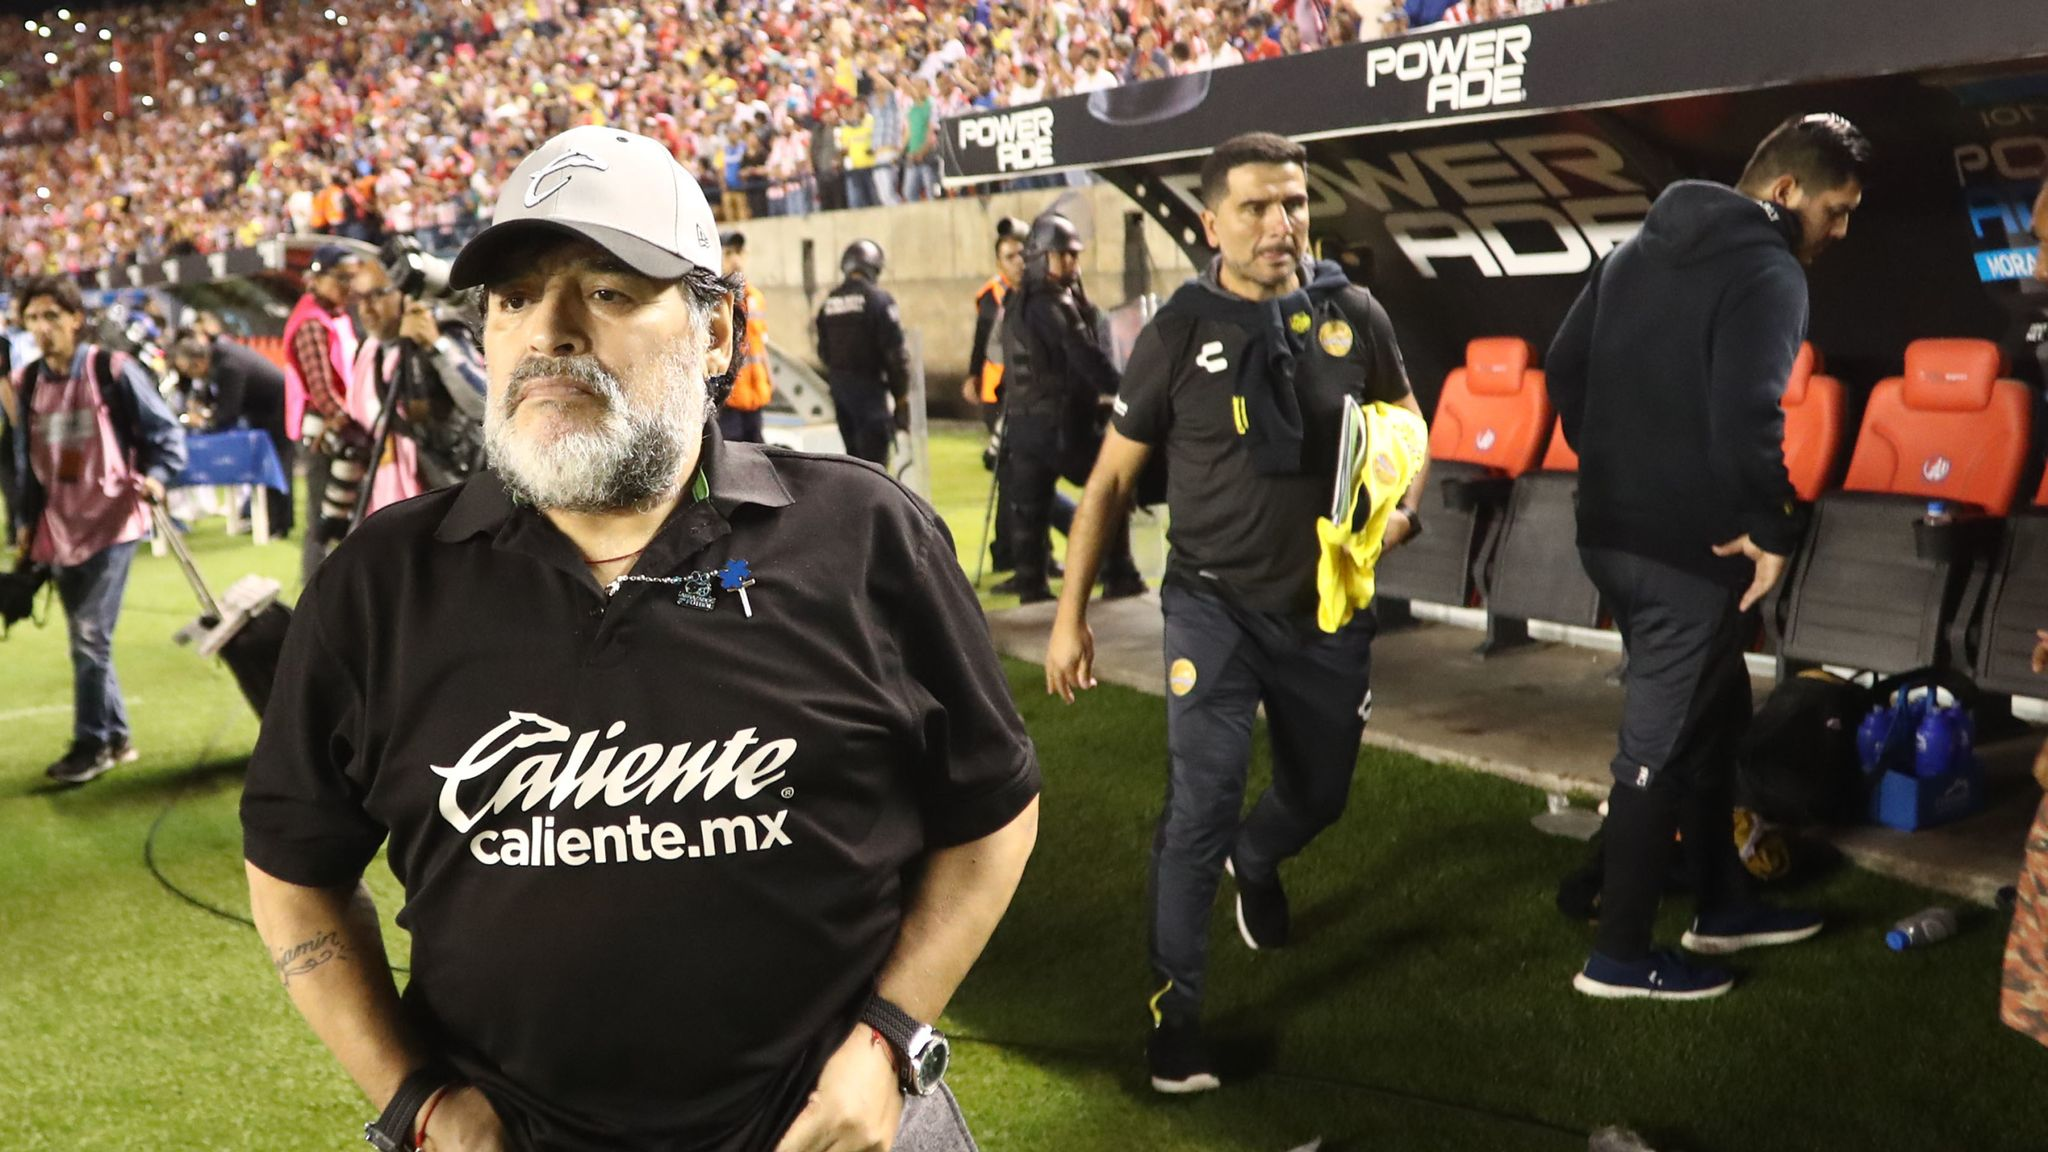 Diego Maradona Leaves Gimnasia Y Esgrima After Just Two Months Football News Sky Sports